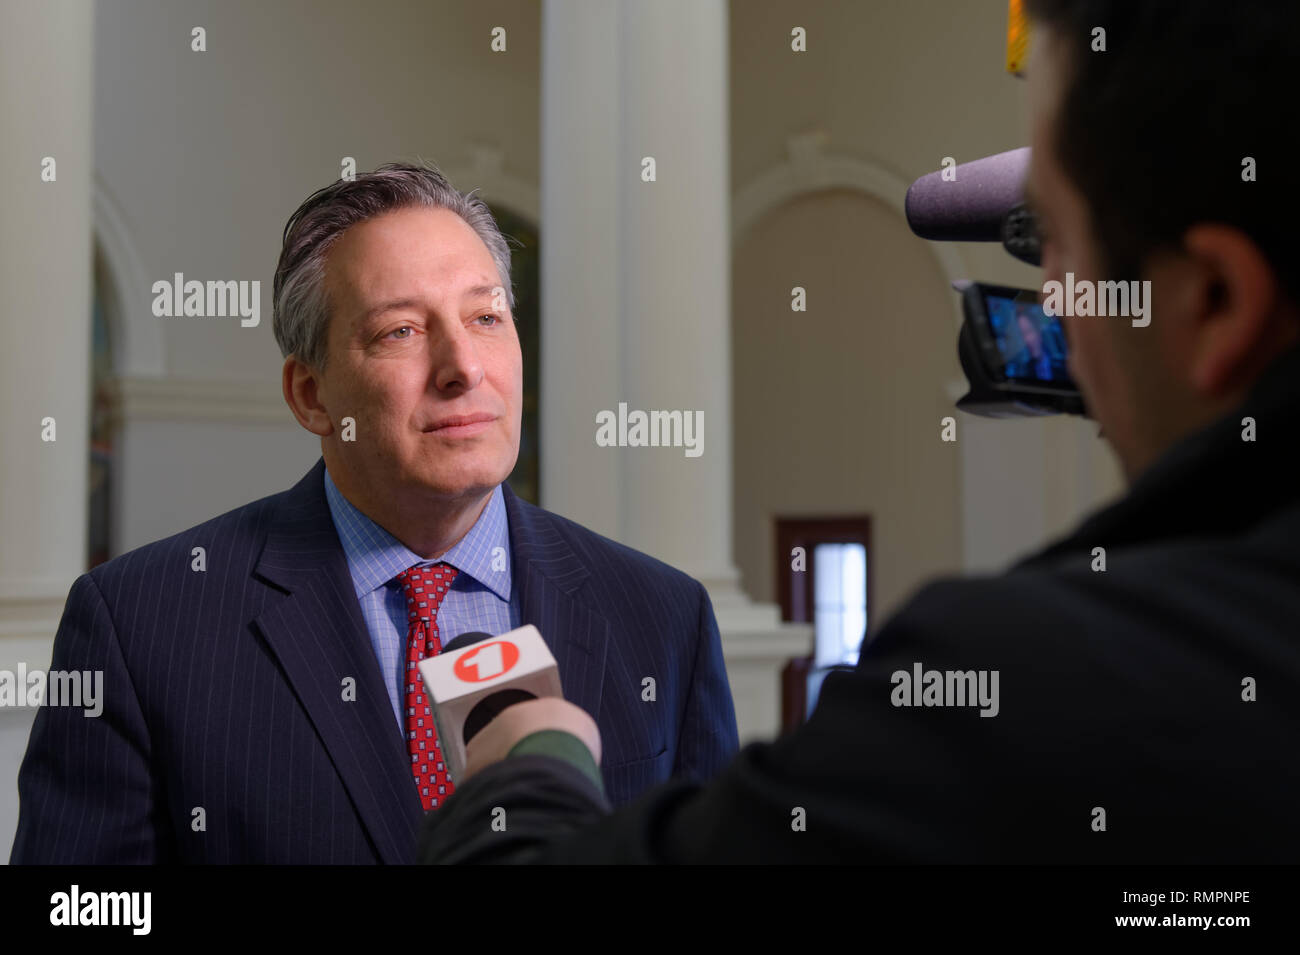 Mineola, New York, USA. 15th Feb, 2019. JON KAIMAN, Deputy County Executive in Suffolk, is interviewed by Verizon FIOS 1 news reporter after Kaiman spoke at NYS Senate Public Hearing on Climate, Community & Protection Act, Bill S7253, sponsored by Sen. Kaminsky, Chair of Senate Standing Committee on Environmental Conservation. This 3rd public hearing on bill to fight climate change was on Long Island. Credit: Ann Parry/ZUMA Wire/Alamy Live News Stock Photo